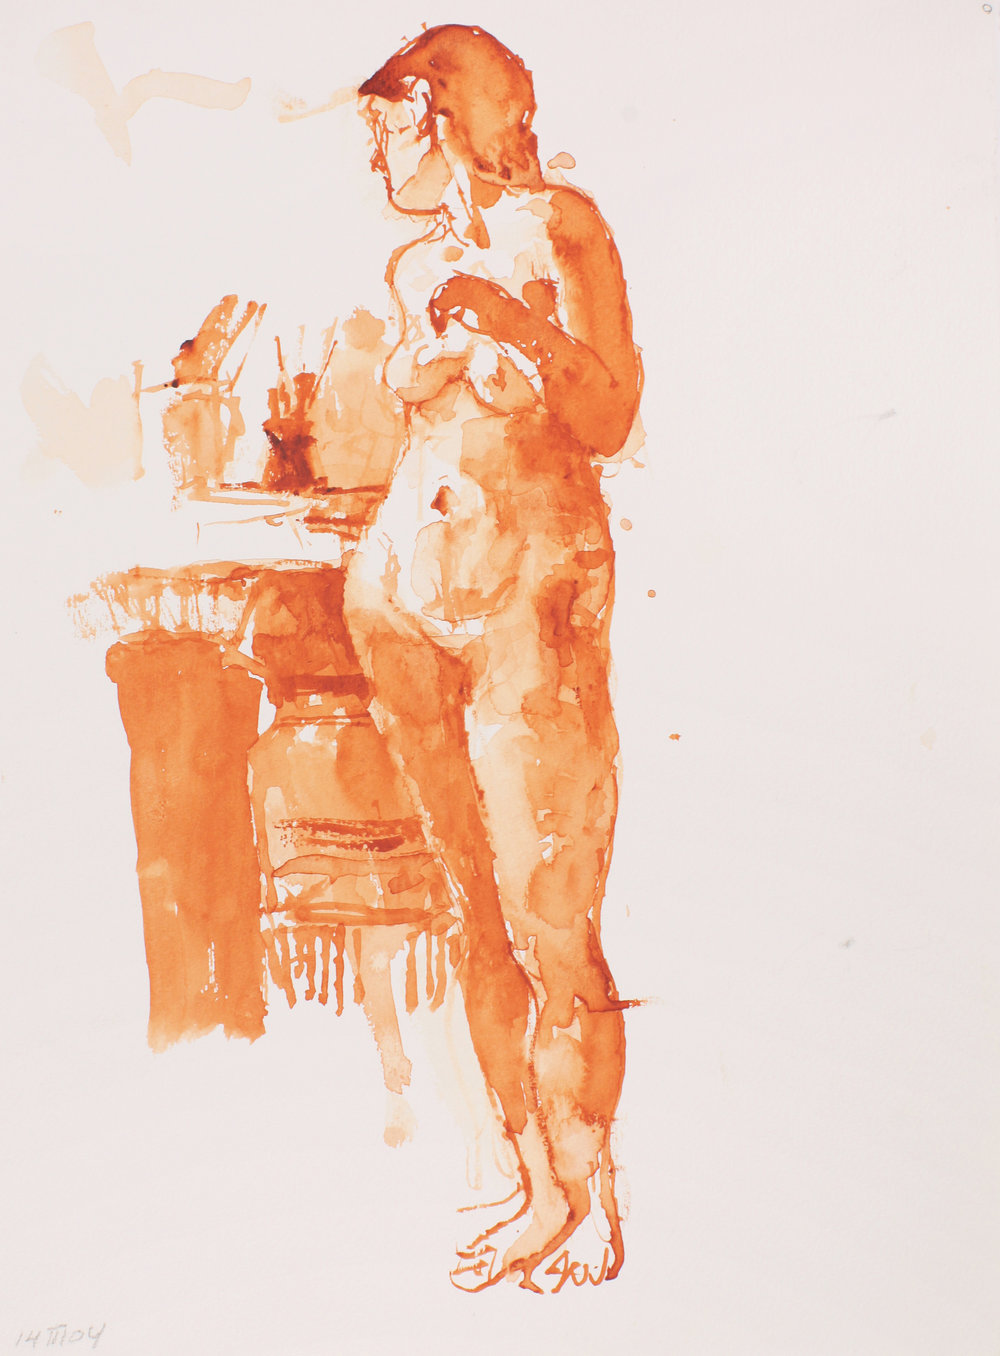 2004_Standing_Nude_with_Brushes_watercolour_on_paper_15x11in_38x28cm_WPF031.jpg